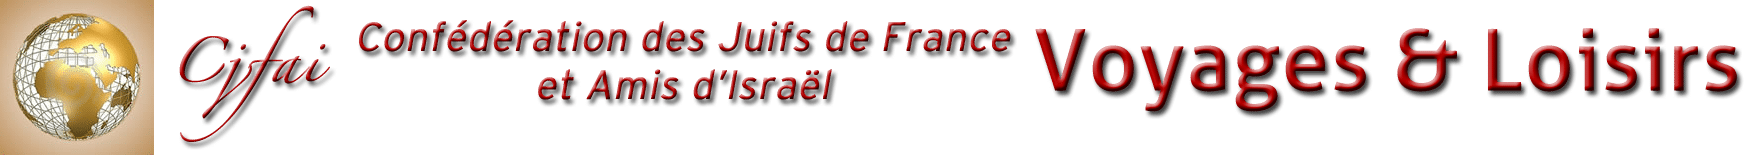 Voyages & Loisirs - C.J.F.A.I | Voyages & Loisirs – C.J.F.A.I   Forest lodge